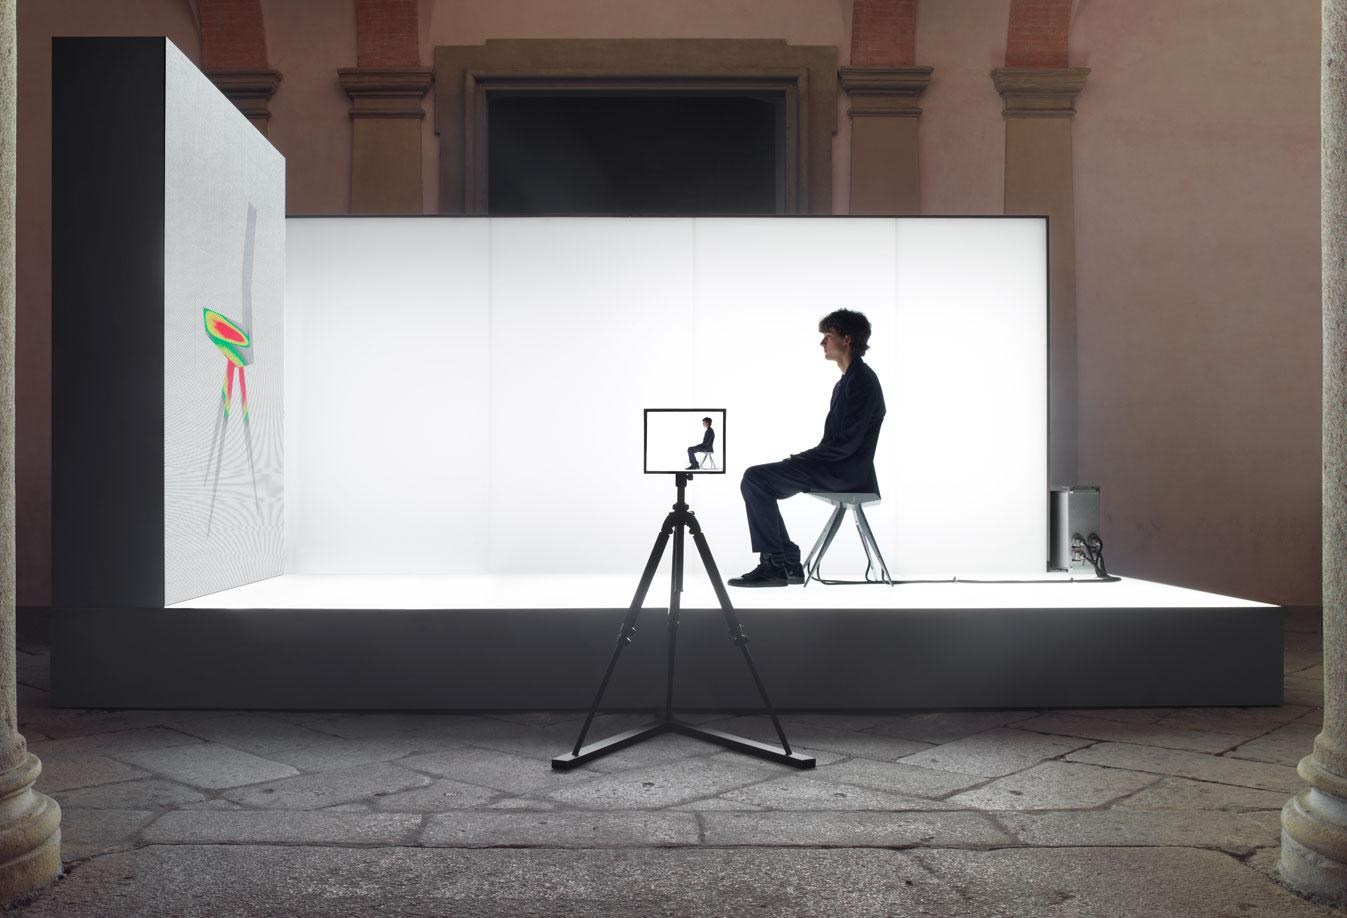 A prototype of the chair was tested by 1,500 people during the Milan Furniture Fair to generate data which was used to perfect the unit